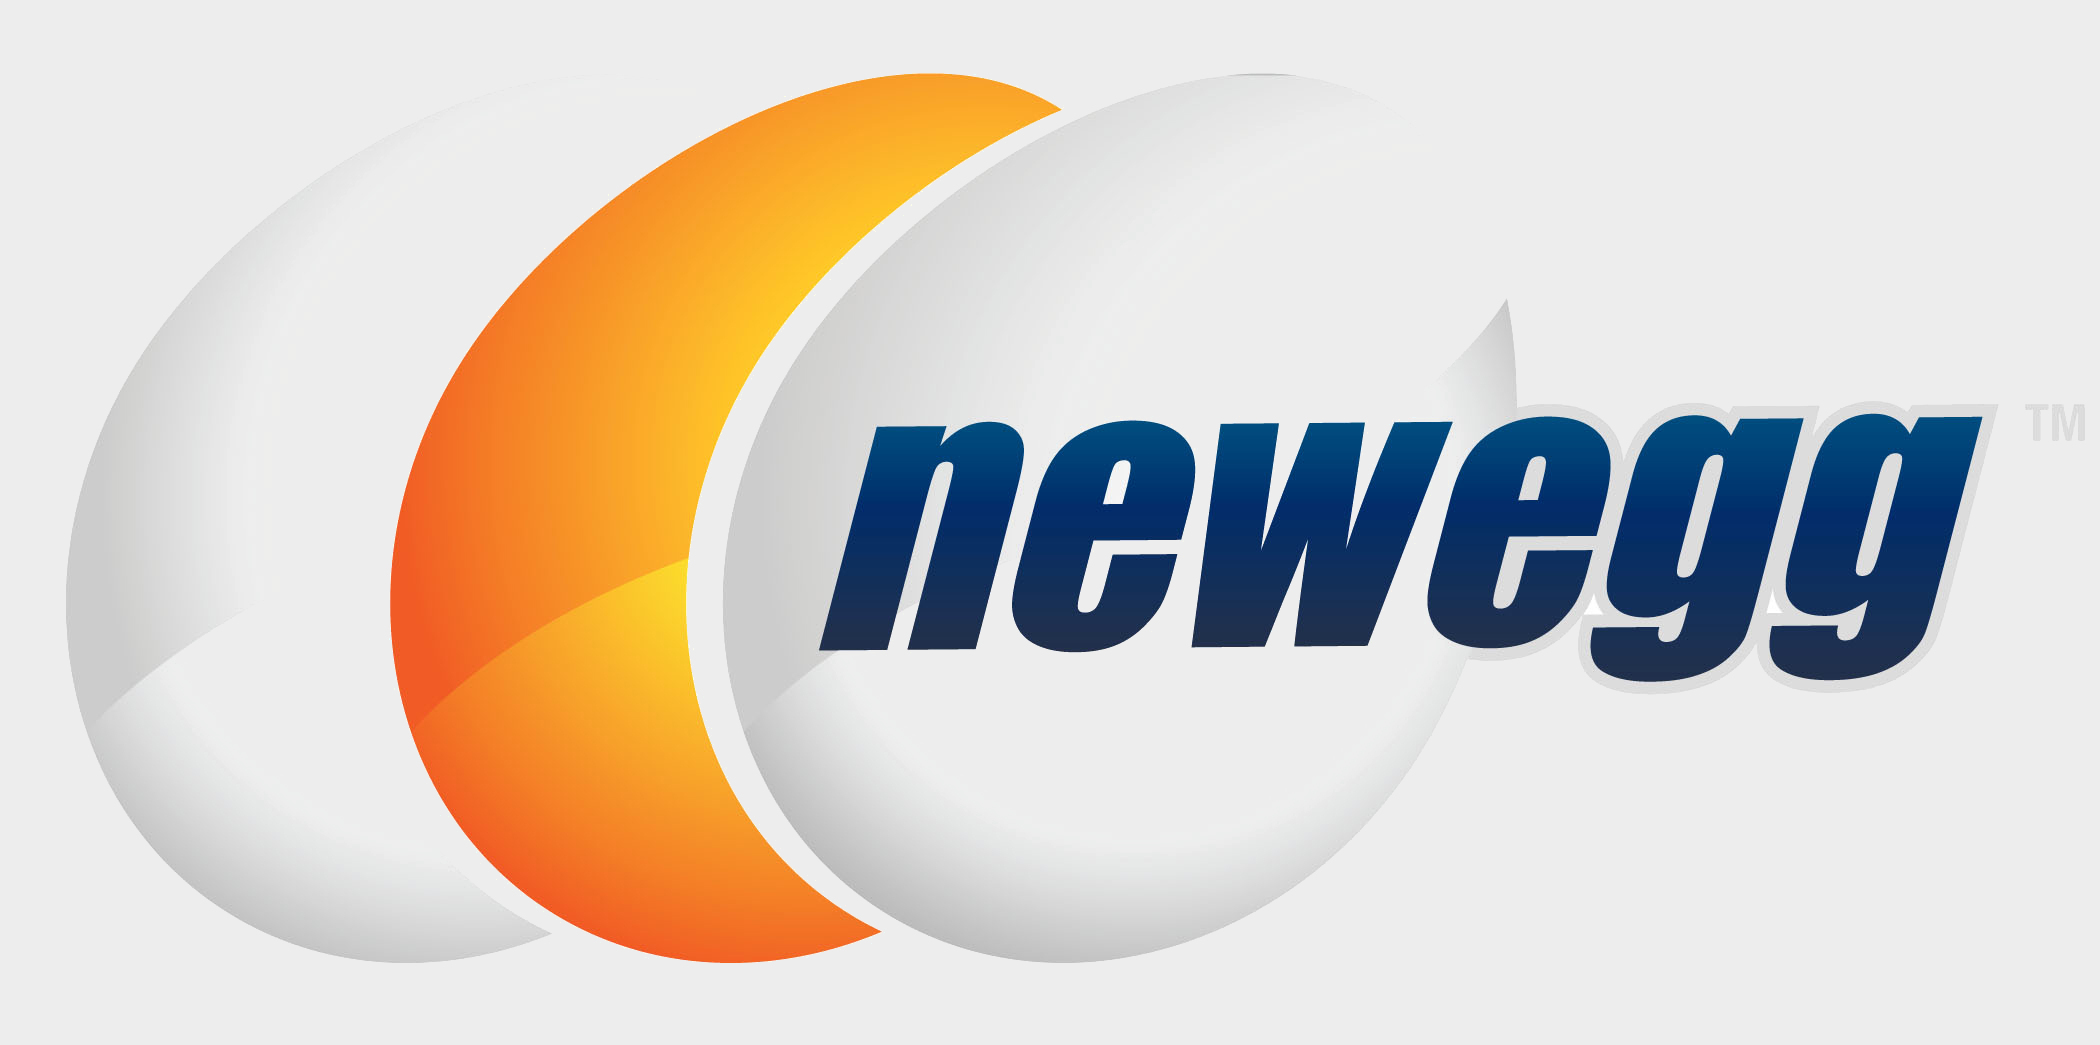 Logo, Newegg, Graphics Cards & Video Adapters, , Font, Brand, Desktop Wallpaper, Portable Network Graphics, , Product, new egg, text, product, orange, logo, font, brand, graphics, graphic design, computer wallpaper, circle, Newegg